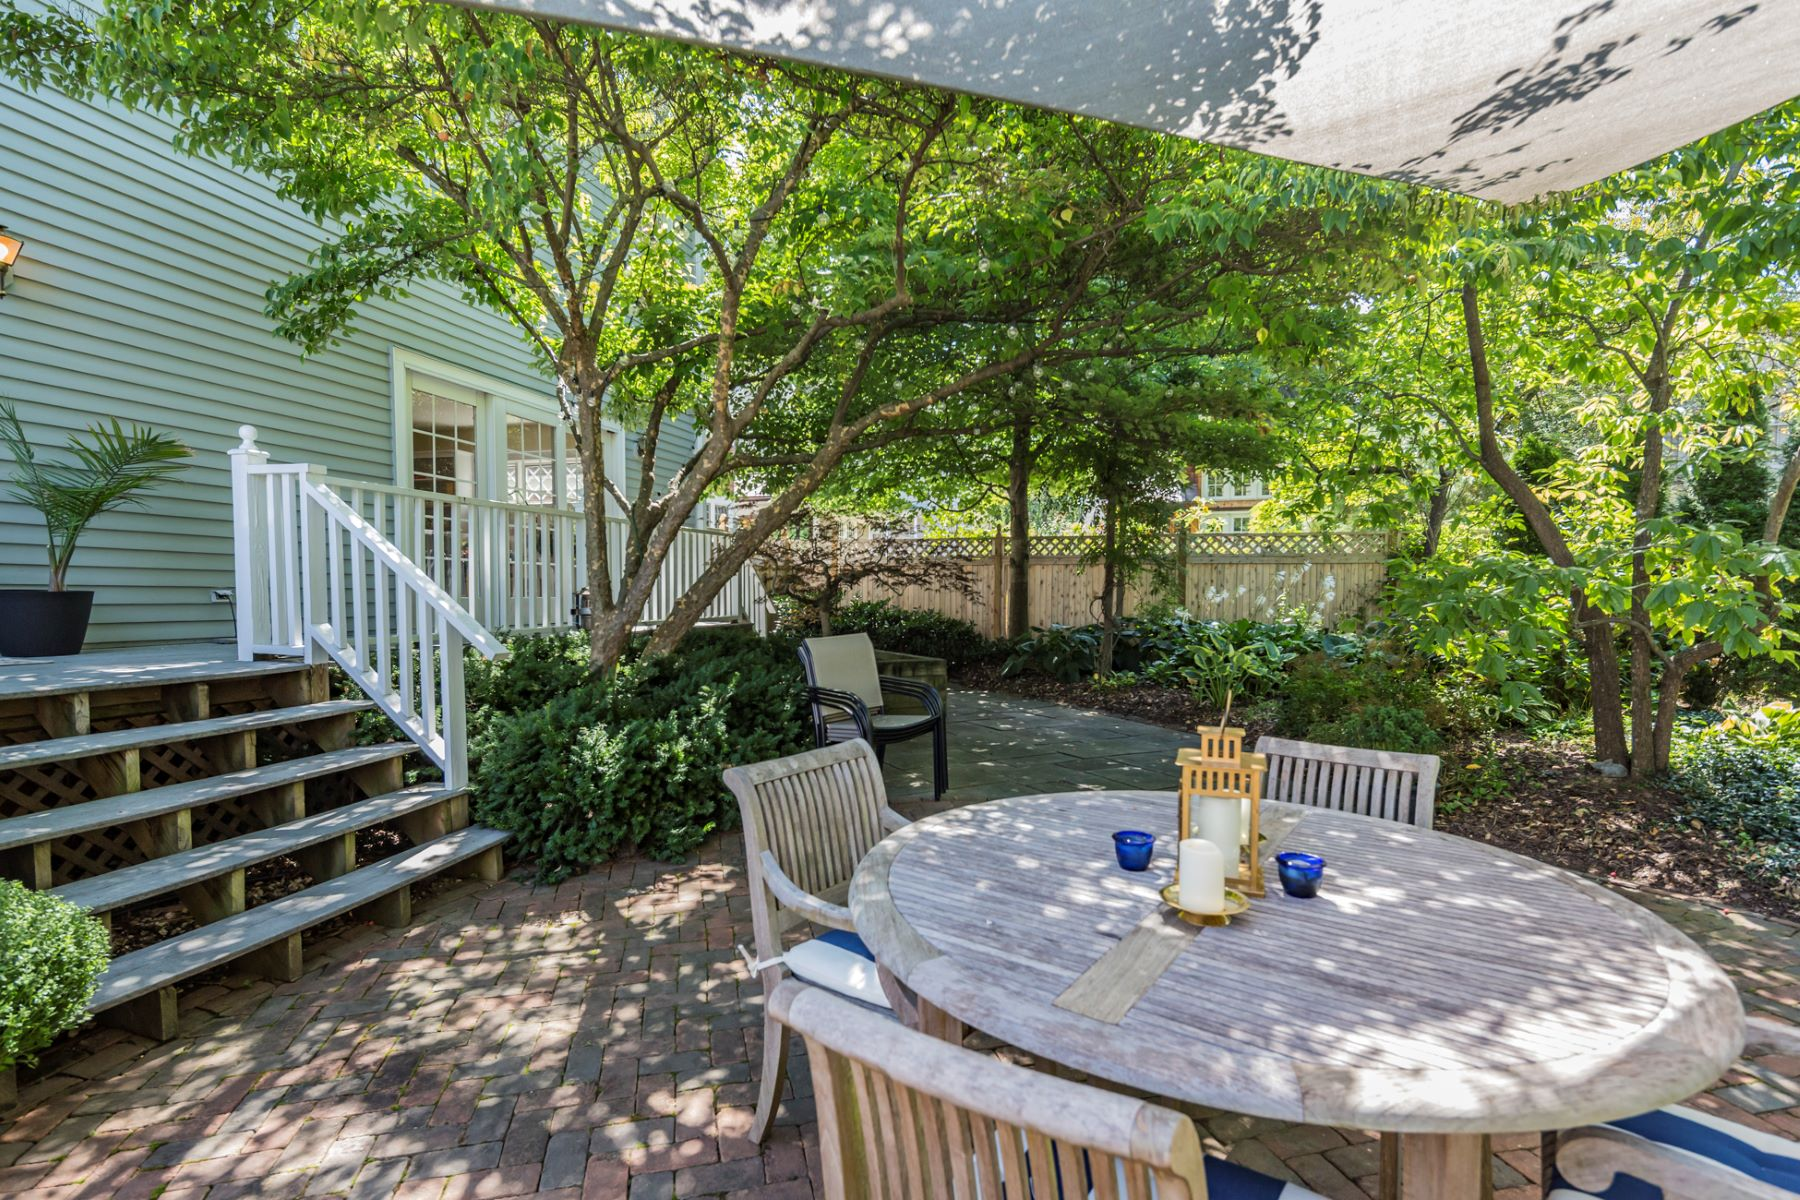 Additional photo for property listing at Period Charm Meets Modern Living 44 Maple Street, Princeton, New Jersey 08542 Stati Uniti